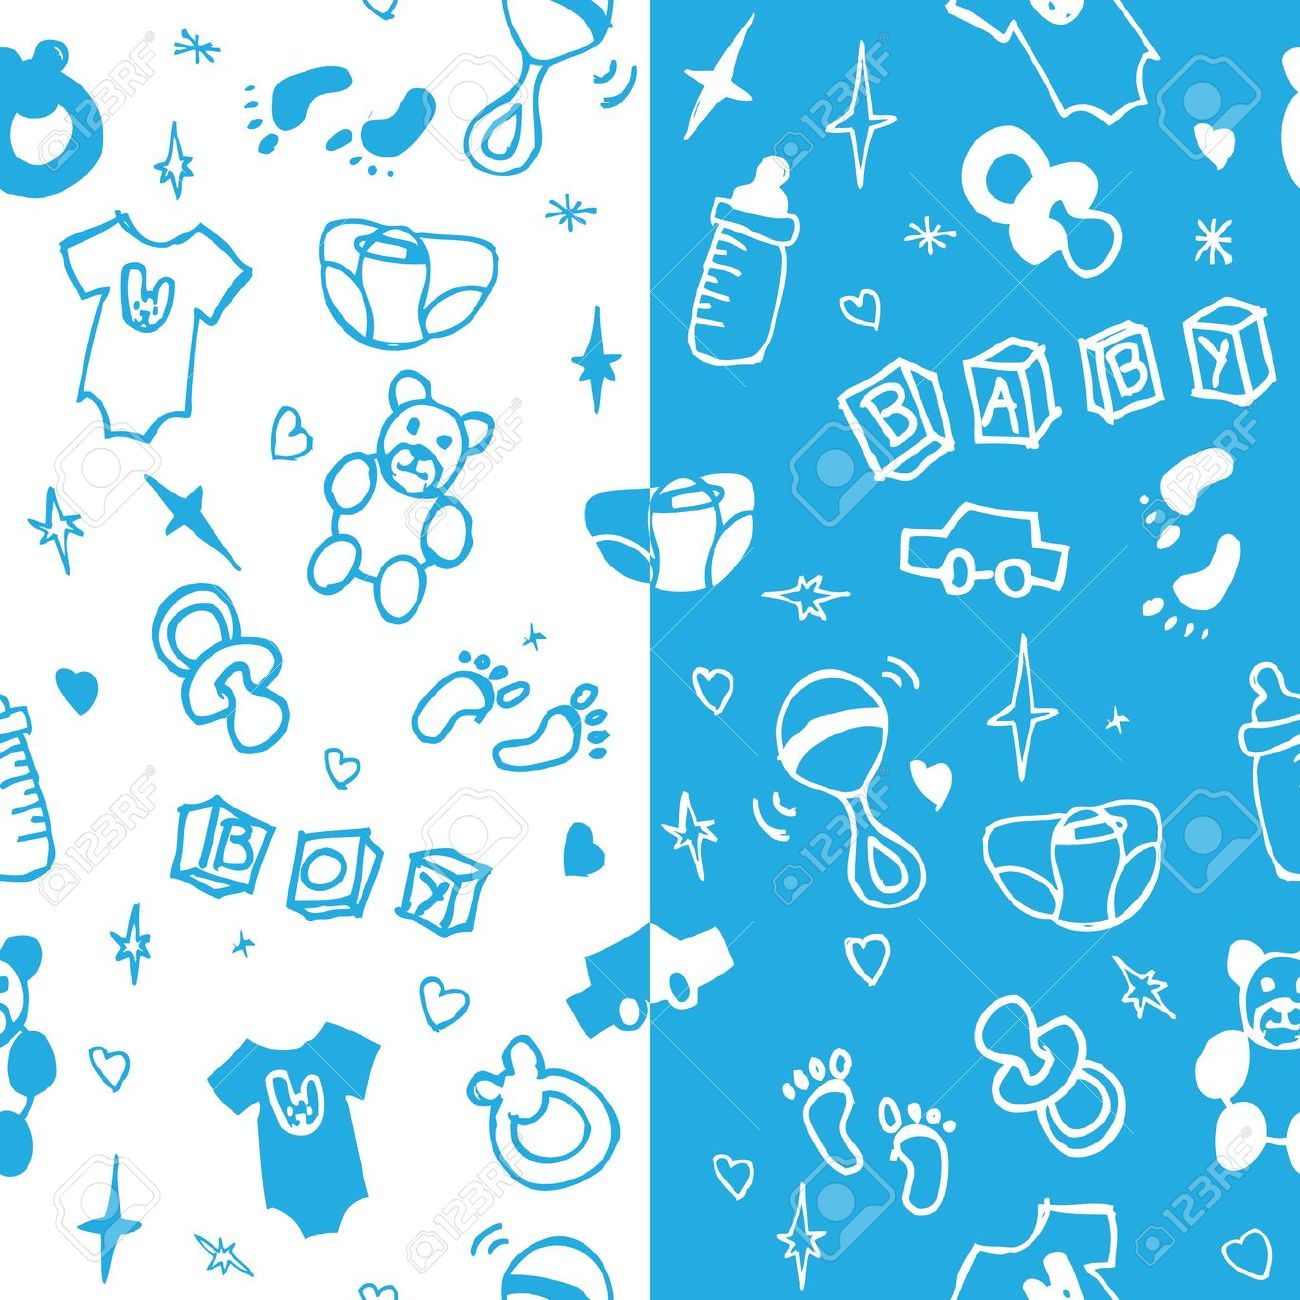 Cute baby clipart patterns clipart black and white download 68,398 Cute Baby Isolated Stock Vector Illustration And Royalty ... clipart black and white download